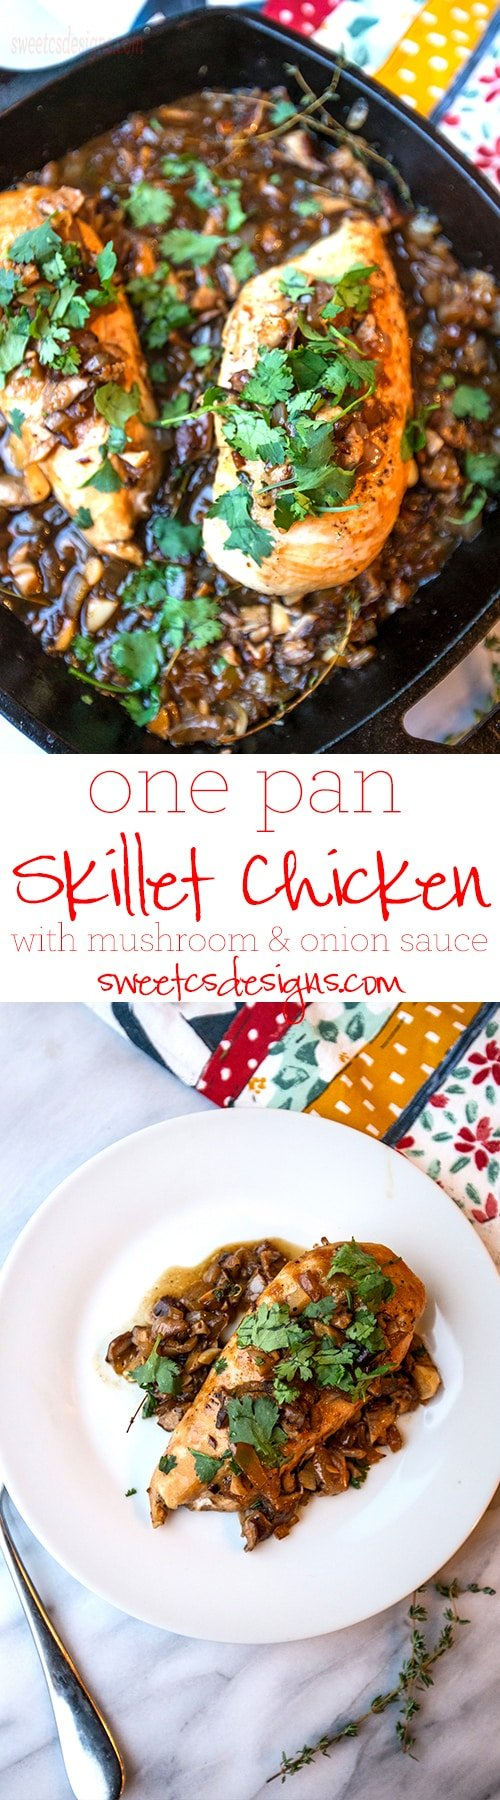 One pan skillet chicken with mushroom and onion sauce- so delicious!